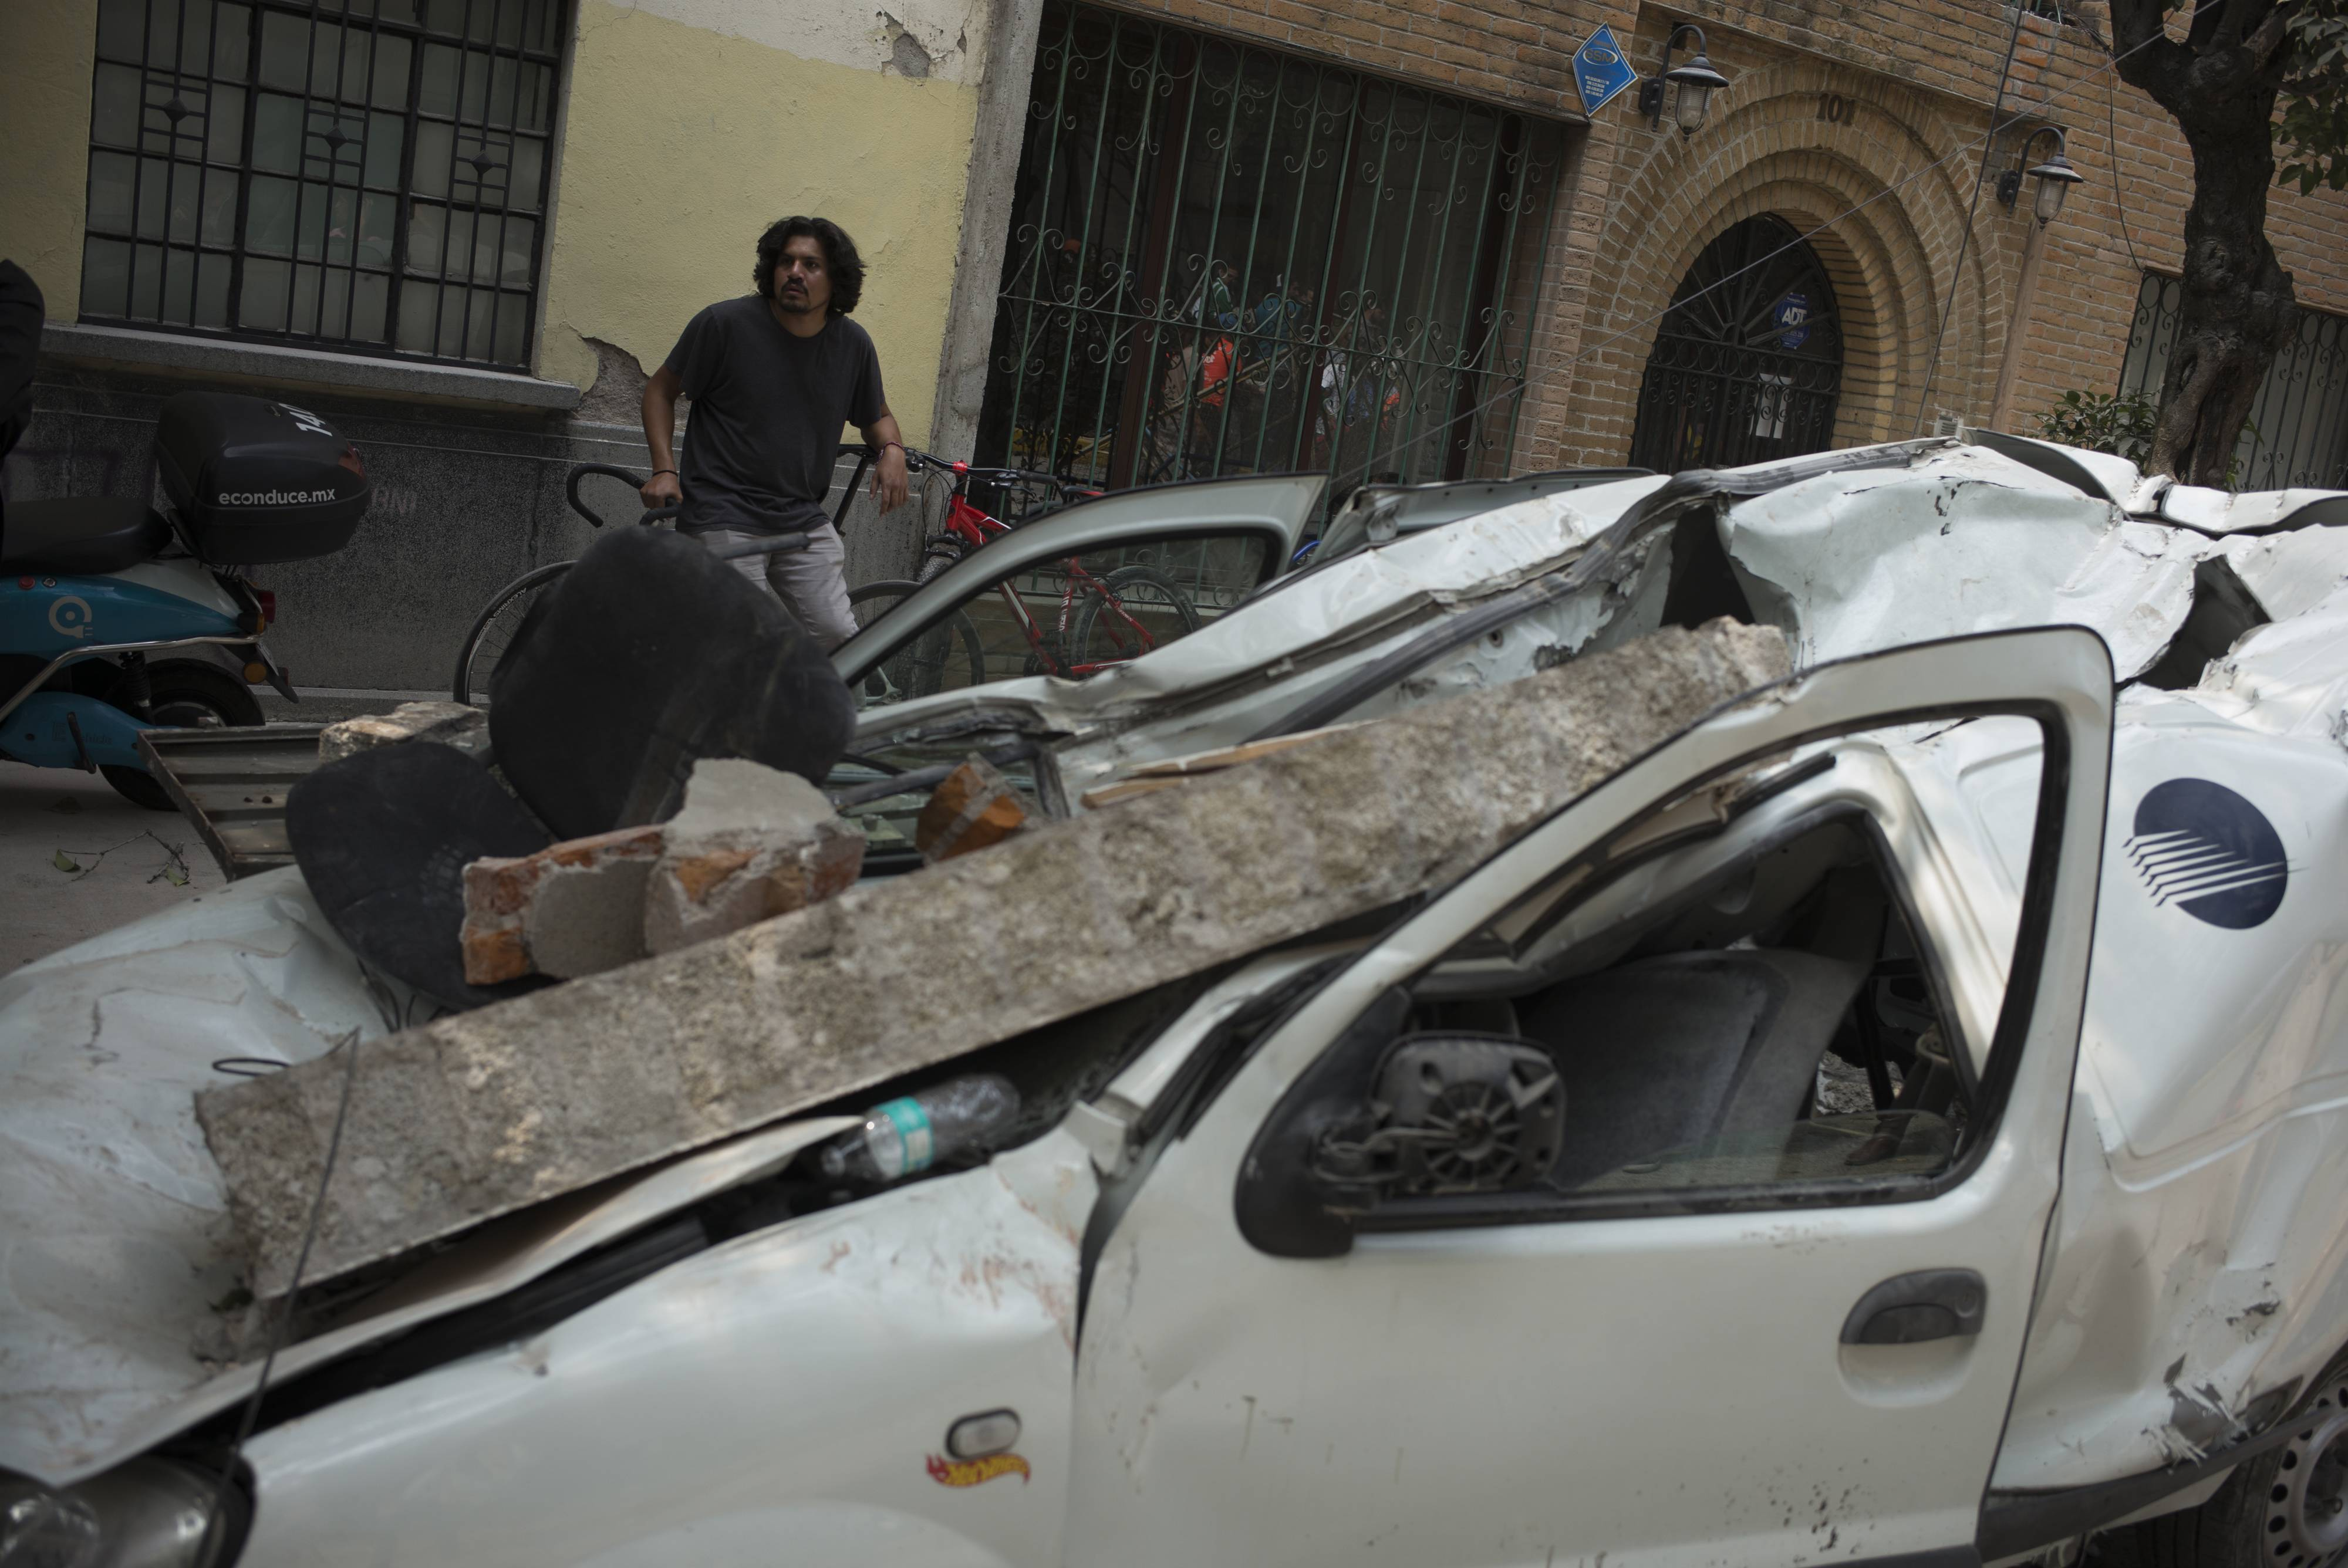 A vehicle is seen destroyed by debris Monday from a collapsed building following an earthquake in Mexico City.